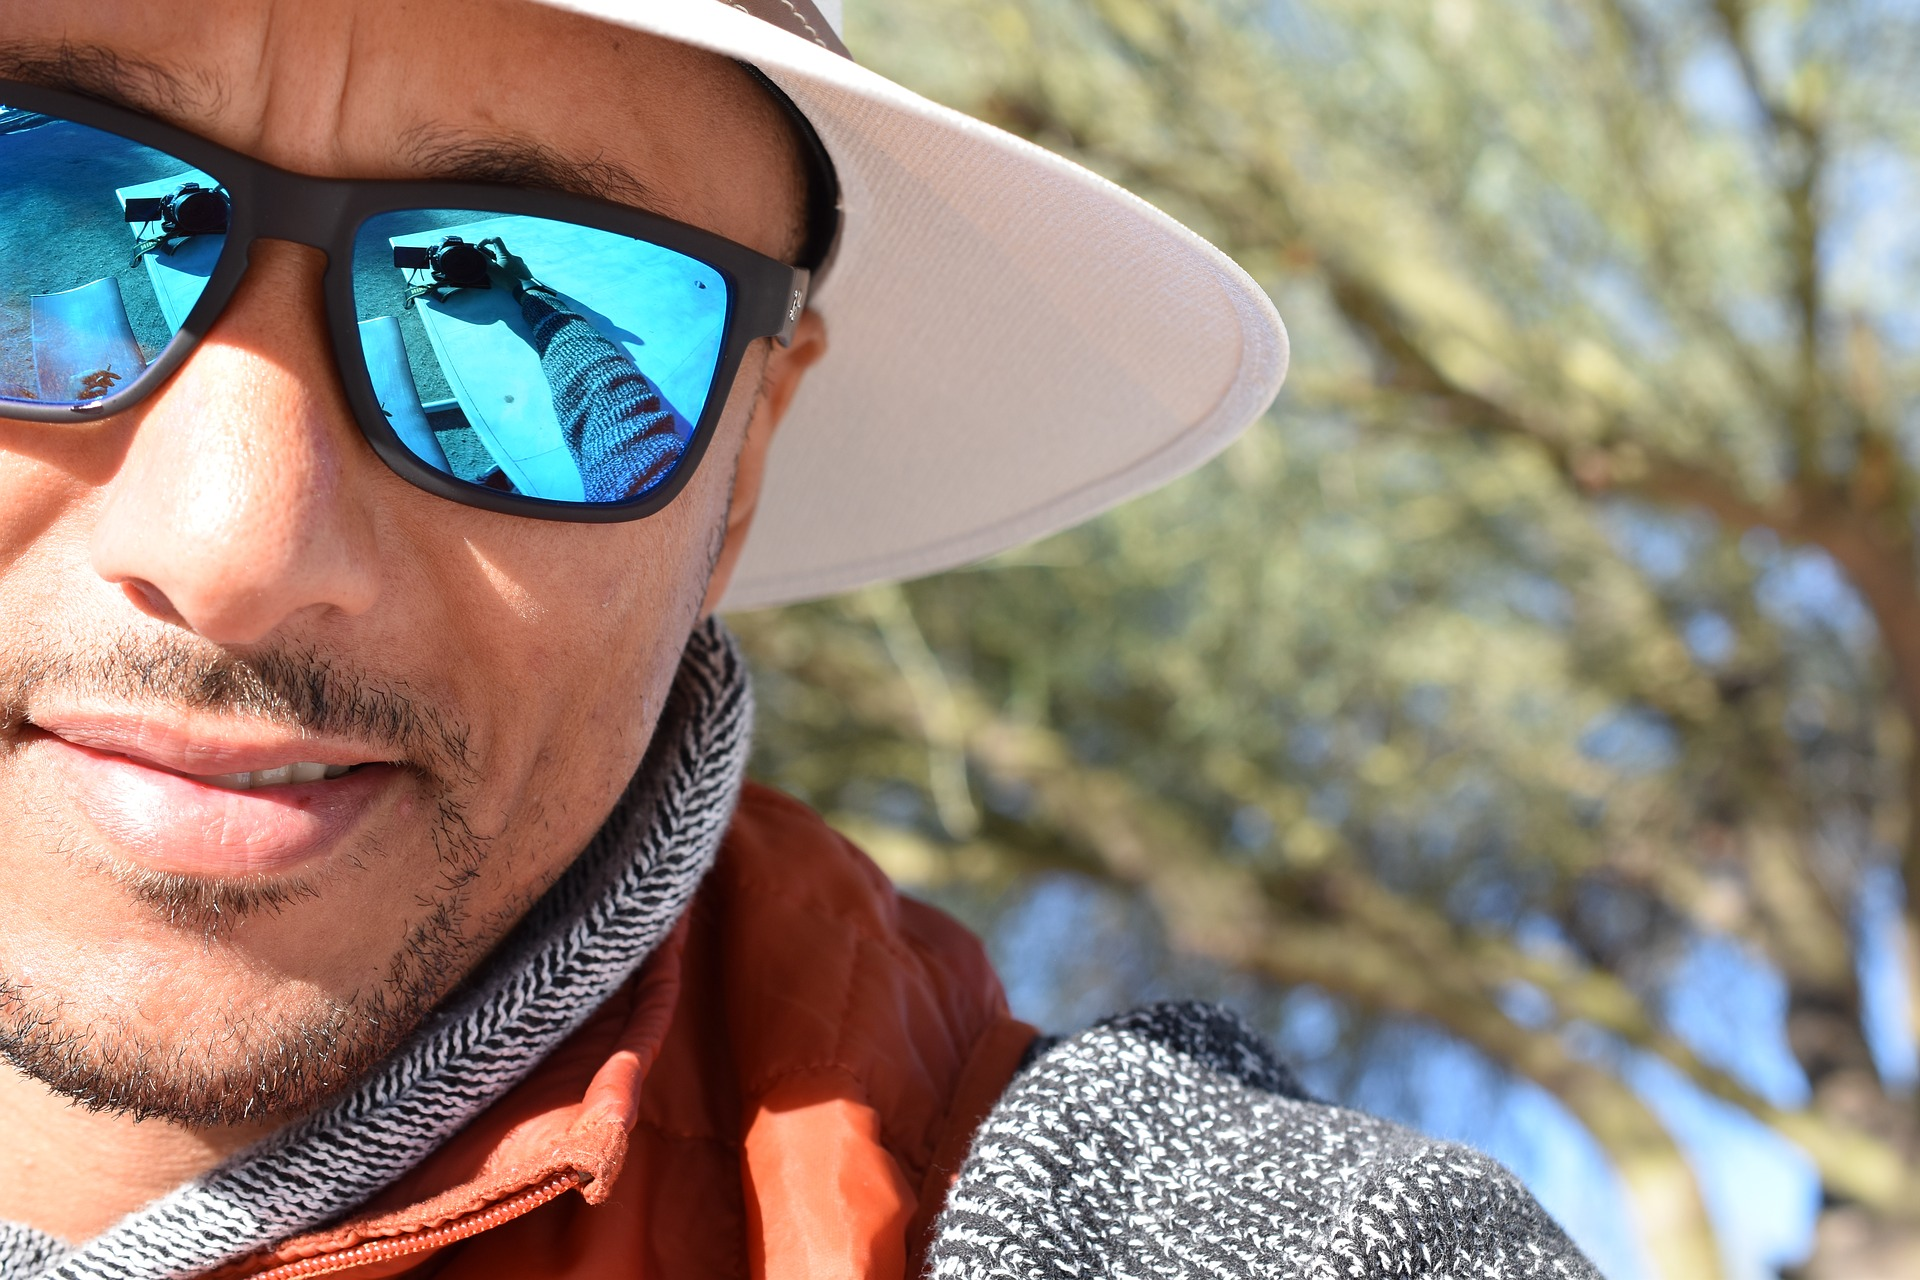 575dfe21e03d The Top 10 Sunglasses for the Outdoorsman